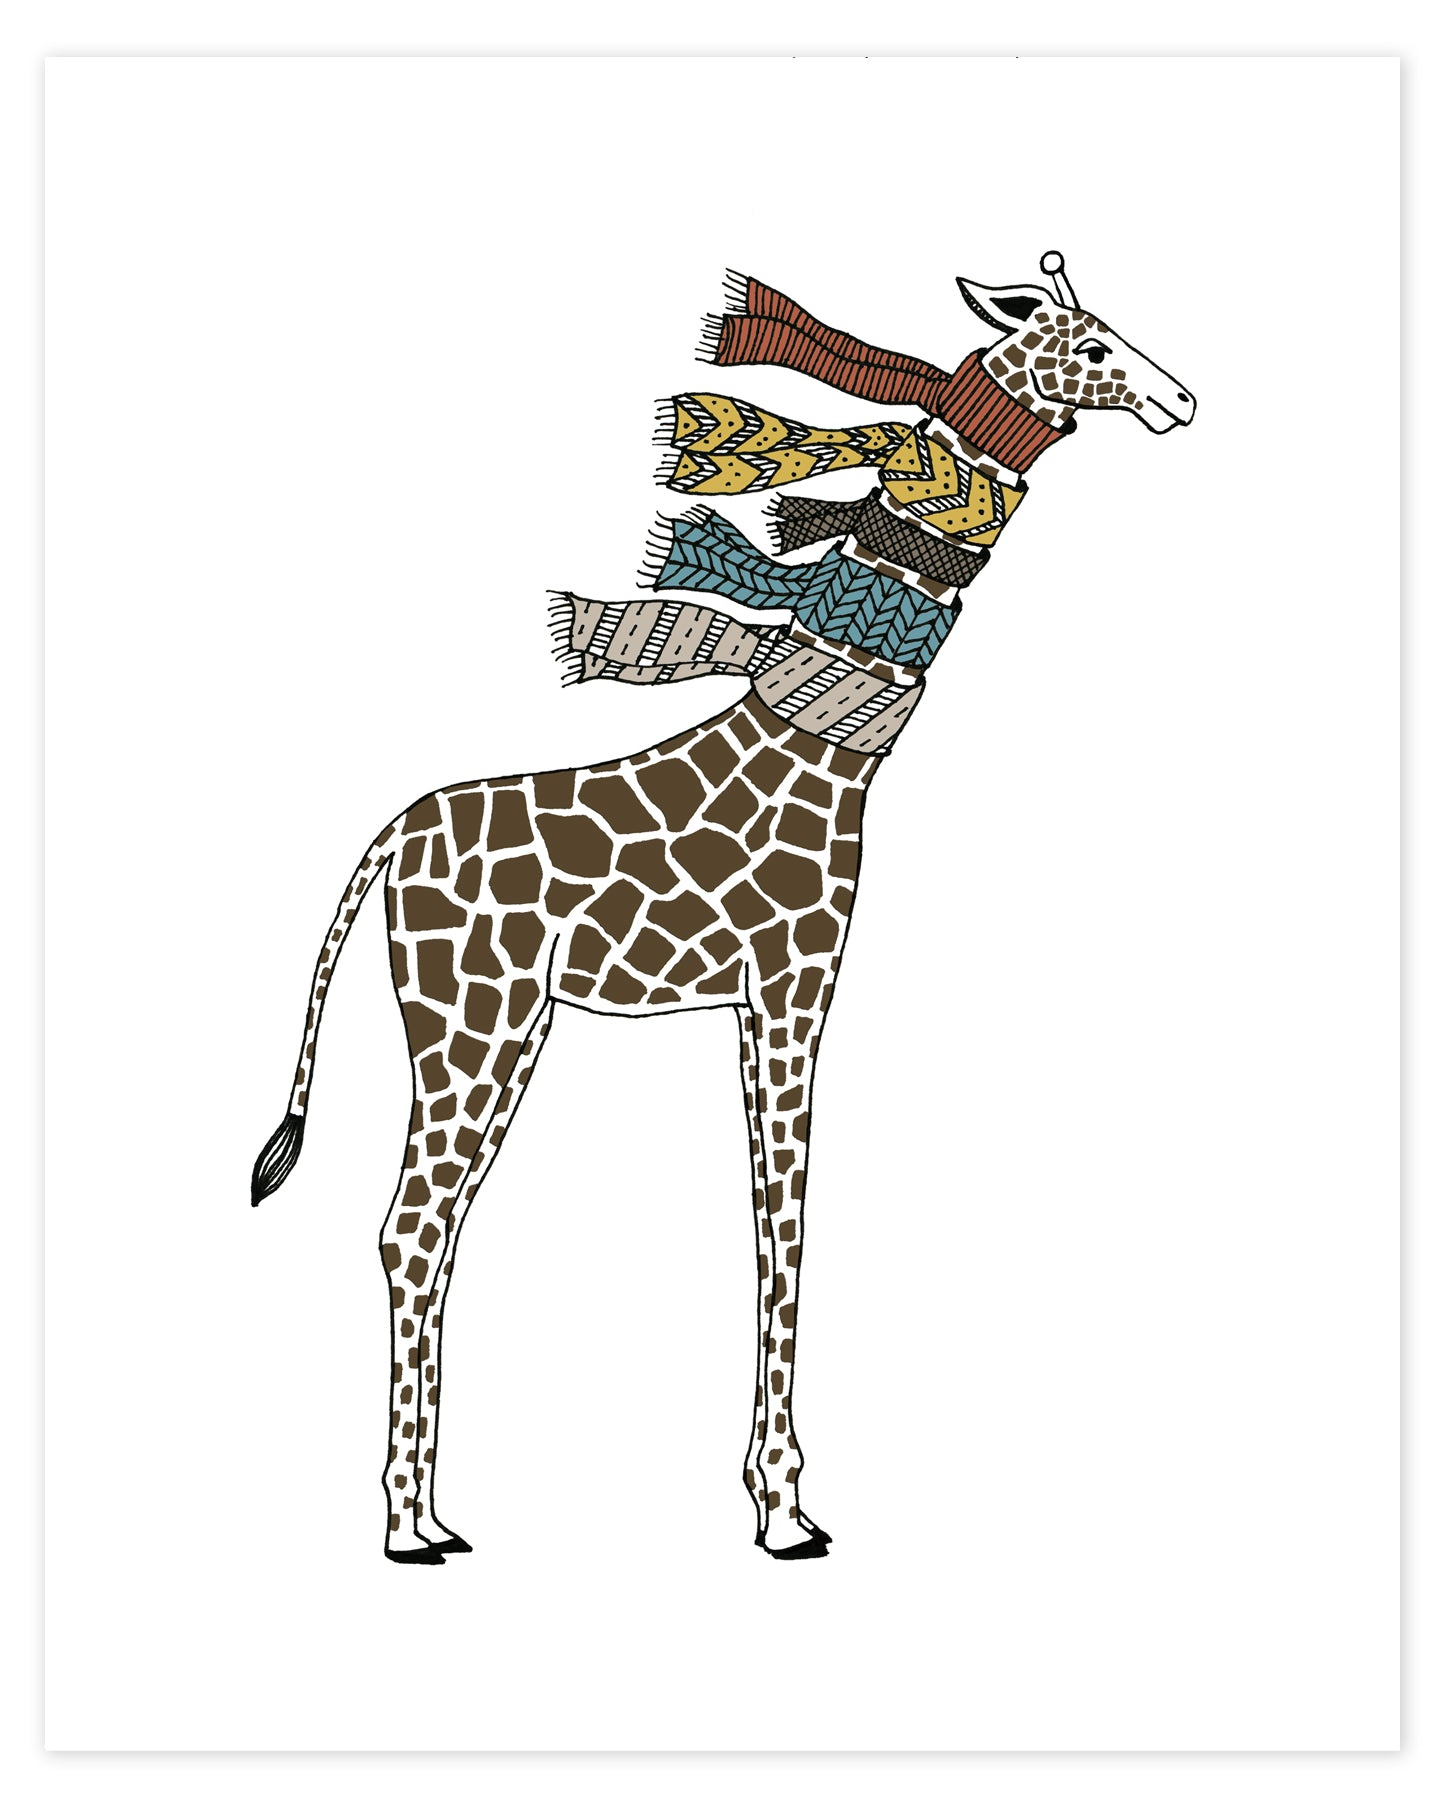 A print of a hand-drawn illustration of giraffe wearing five knit scarves on its neck. Shown in a white background.